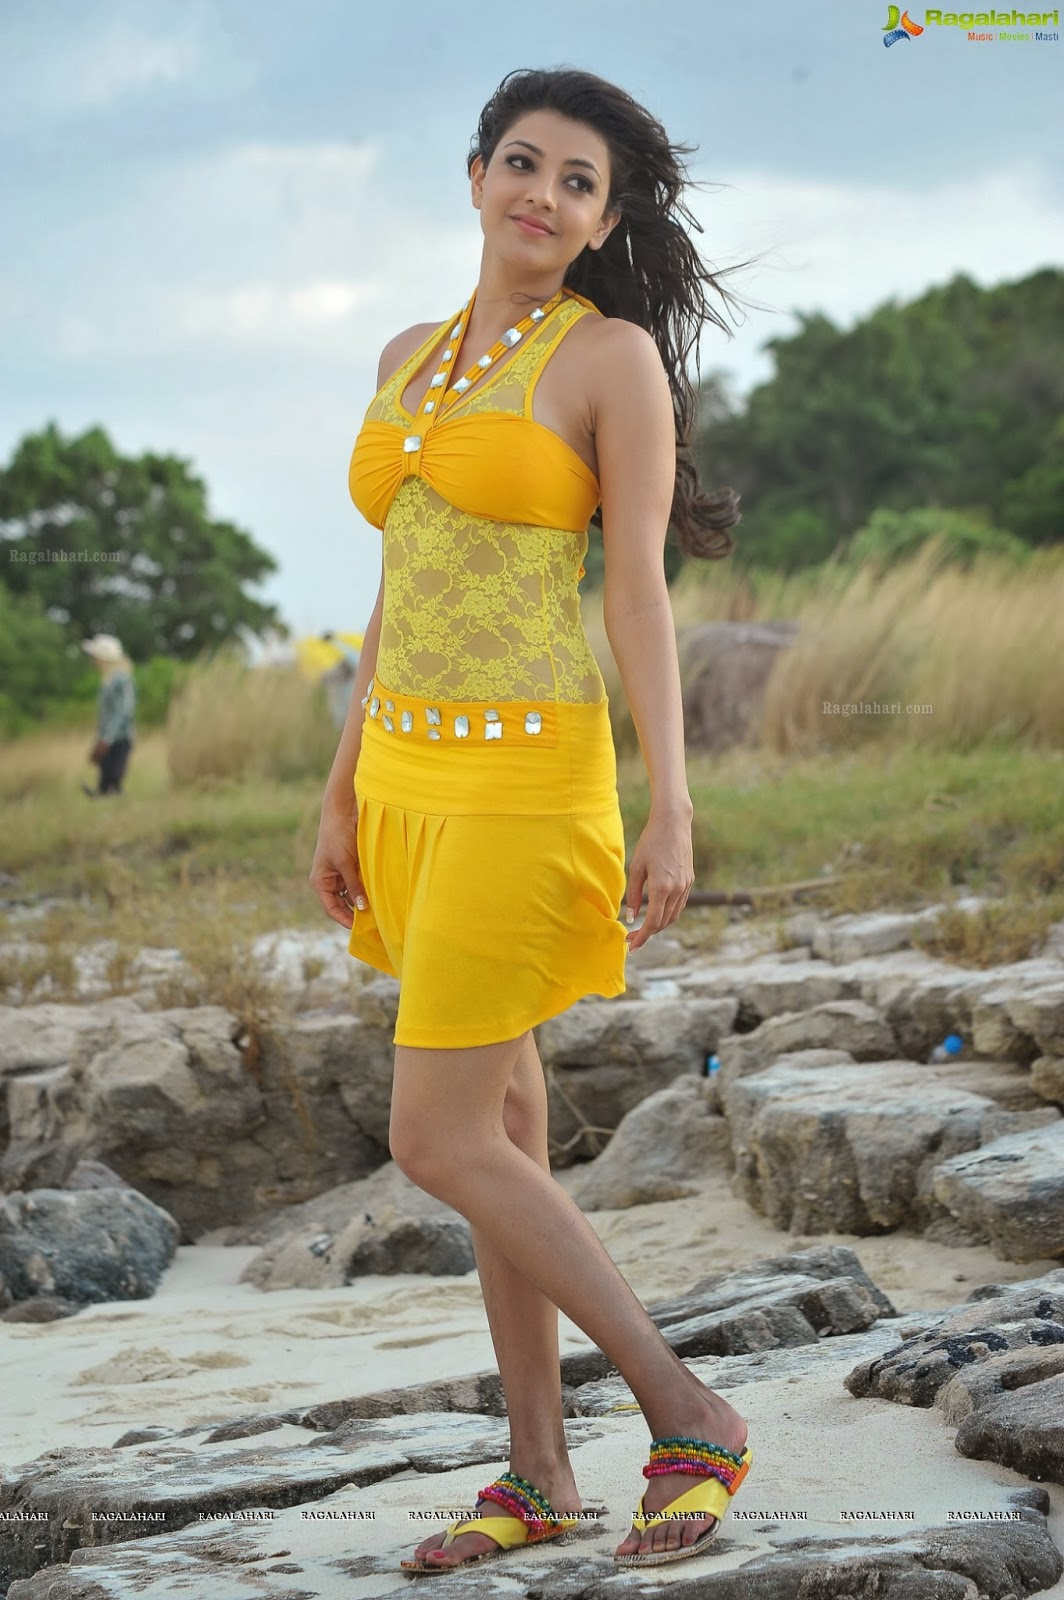 ... 67 more photos of south indian beauty kajal agarwal,s legs and feet